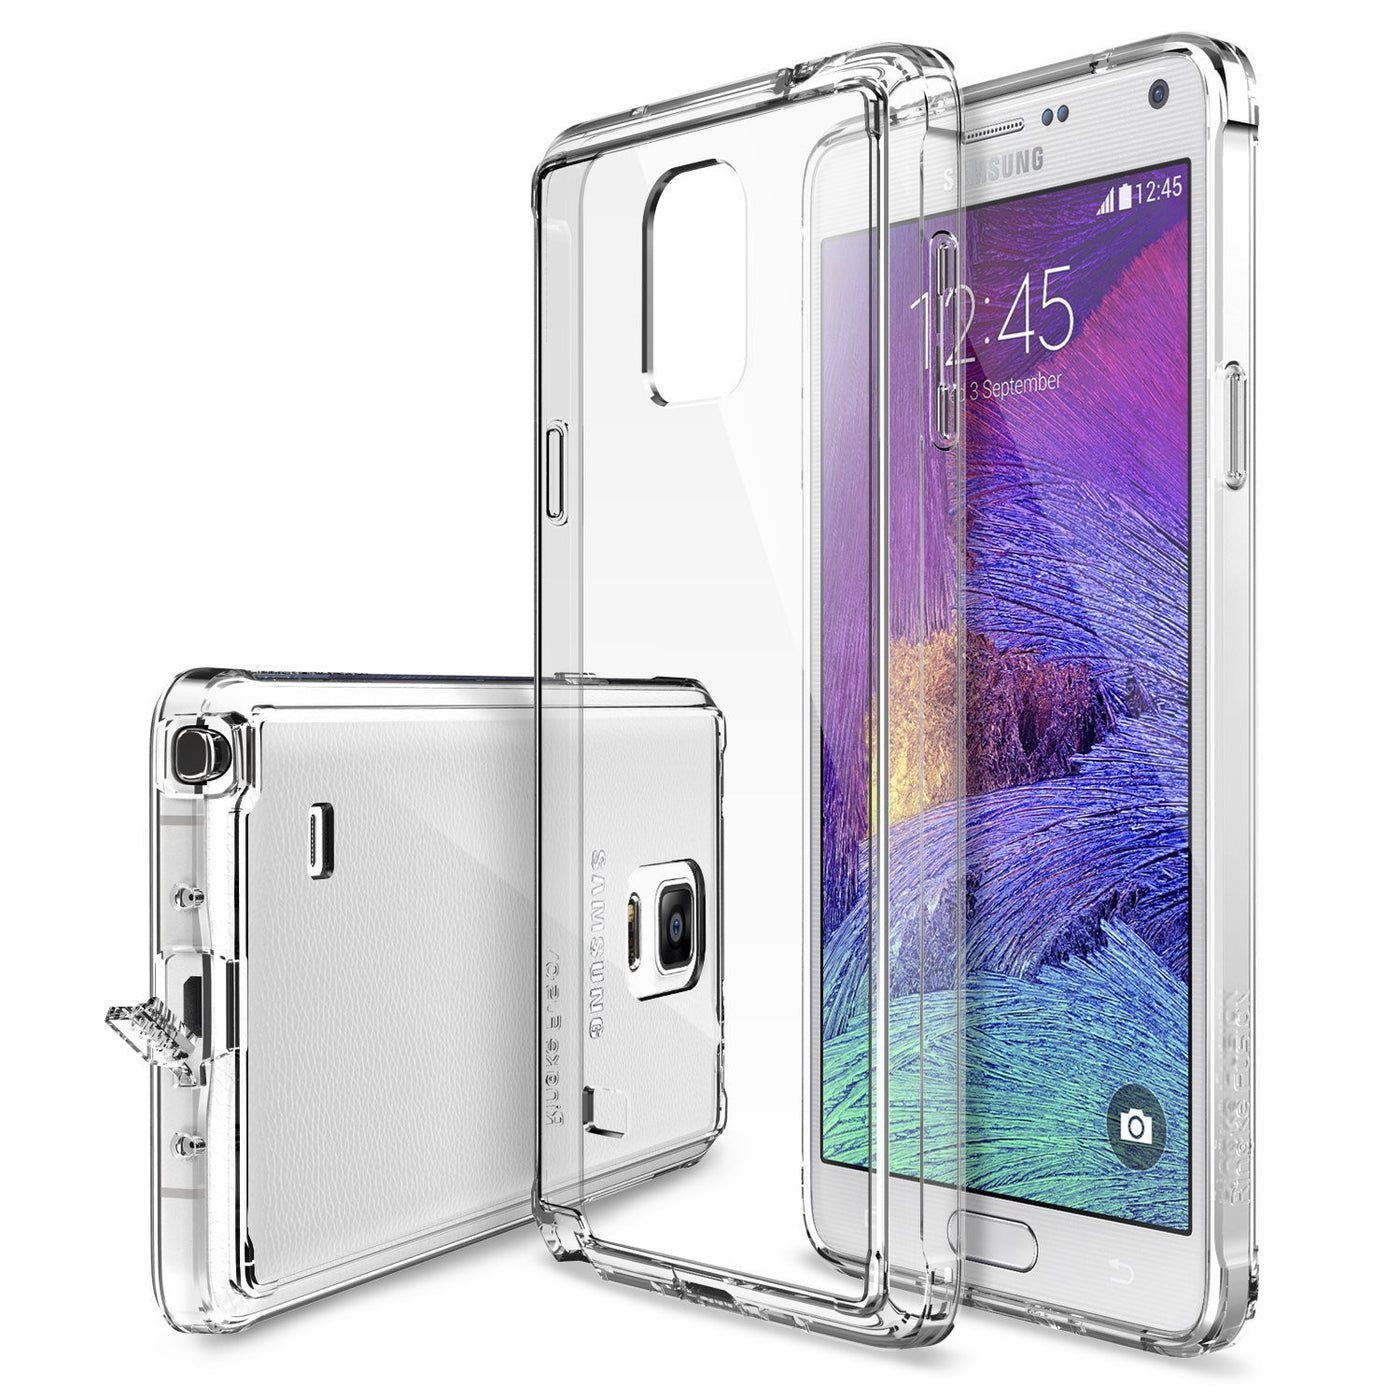 reputable site 7ec07 4a679 Galaxy Note 4 [FUSION]